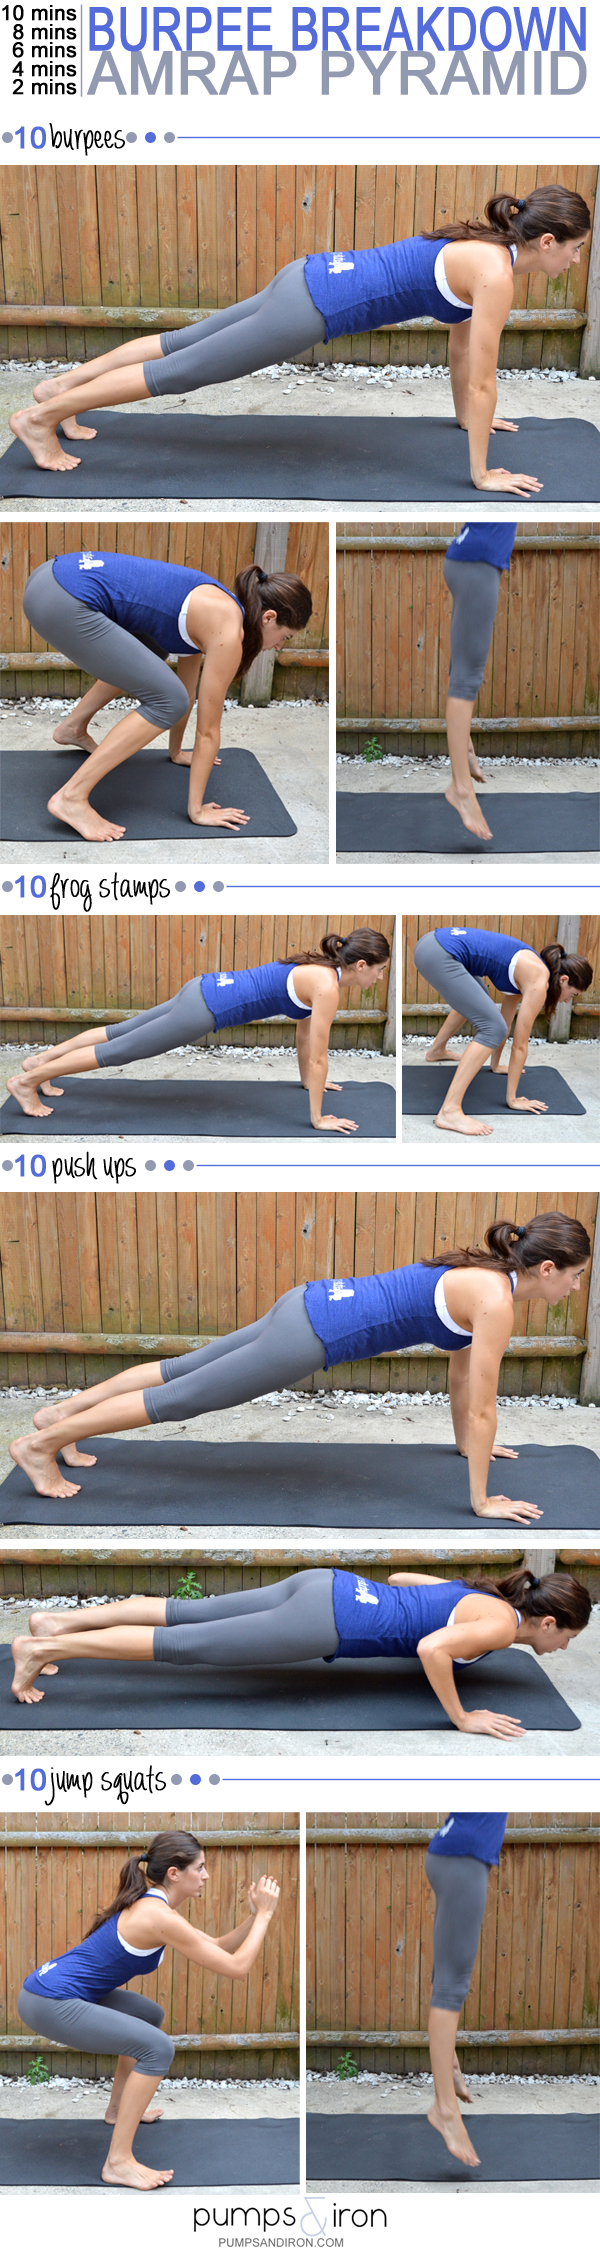 Burpee Breakdown AMRAP Pyramid Workout